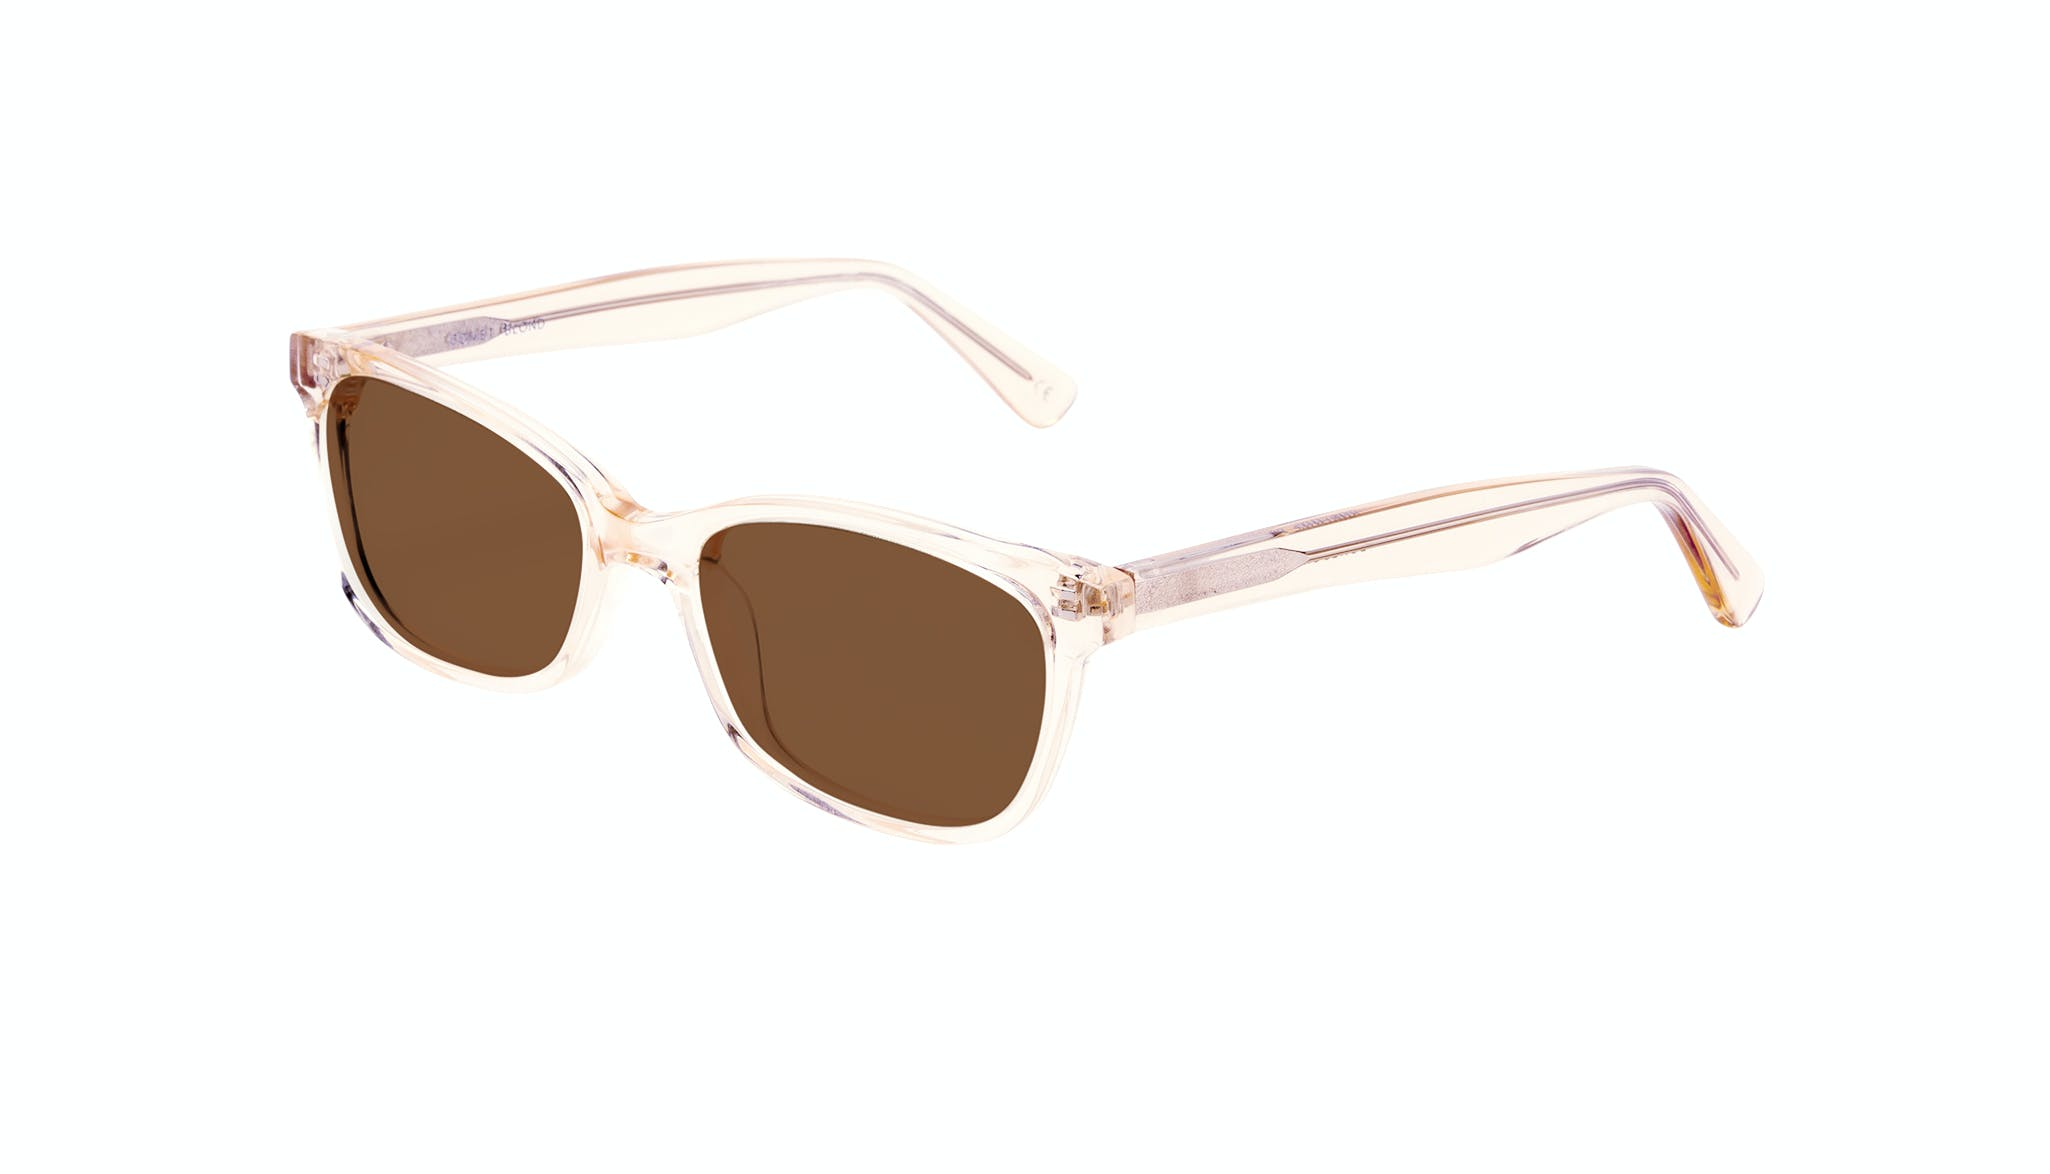 Affordable Fashion Glasses Cat Eye Rectangle Square Sunglasses Women Comet Blond Tilt